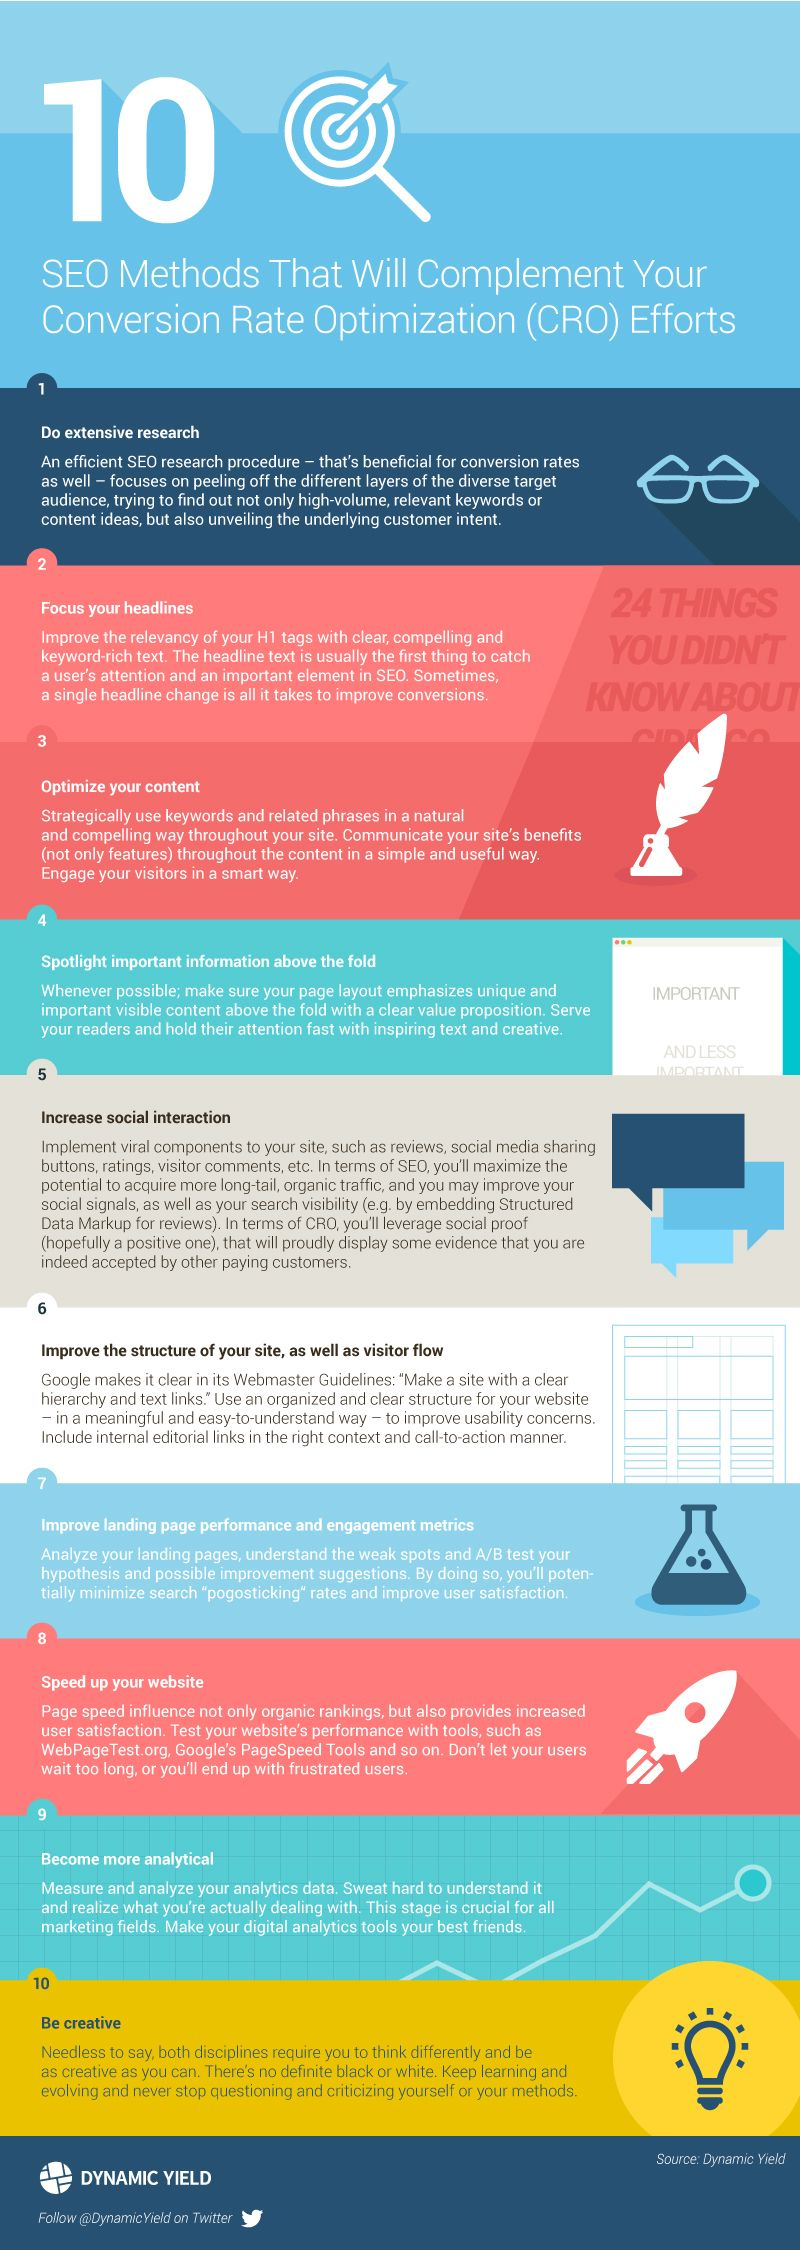 10 Ways Your SEO Can Complement Your CRO Work #infographic